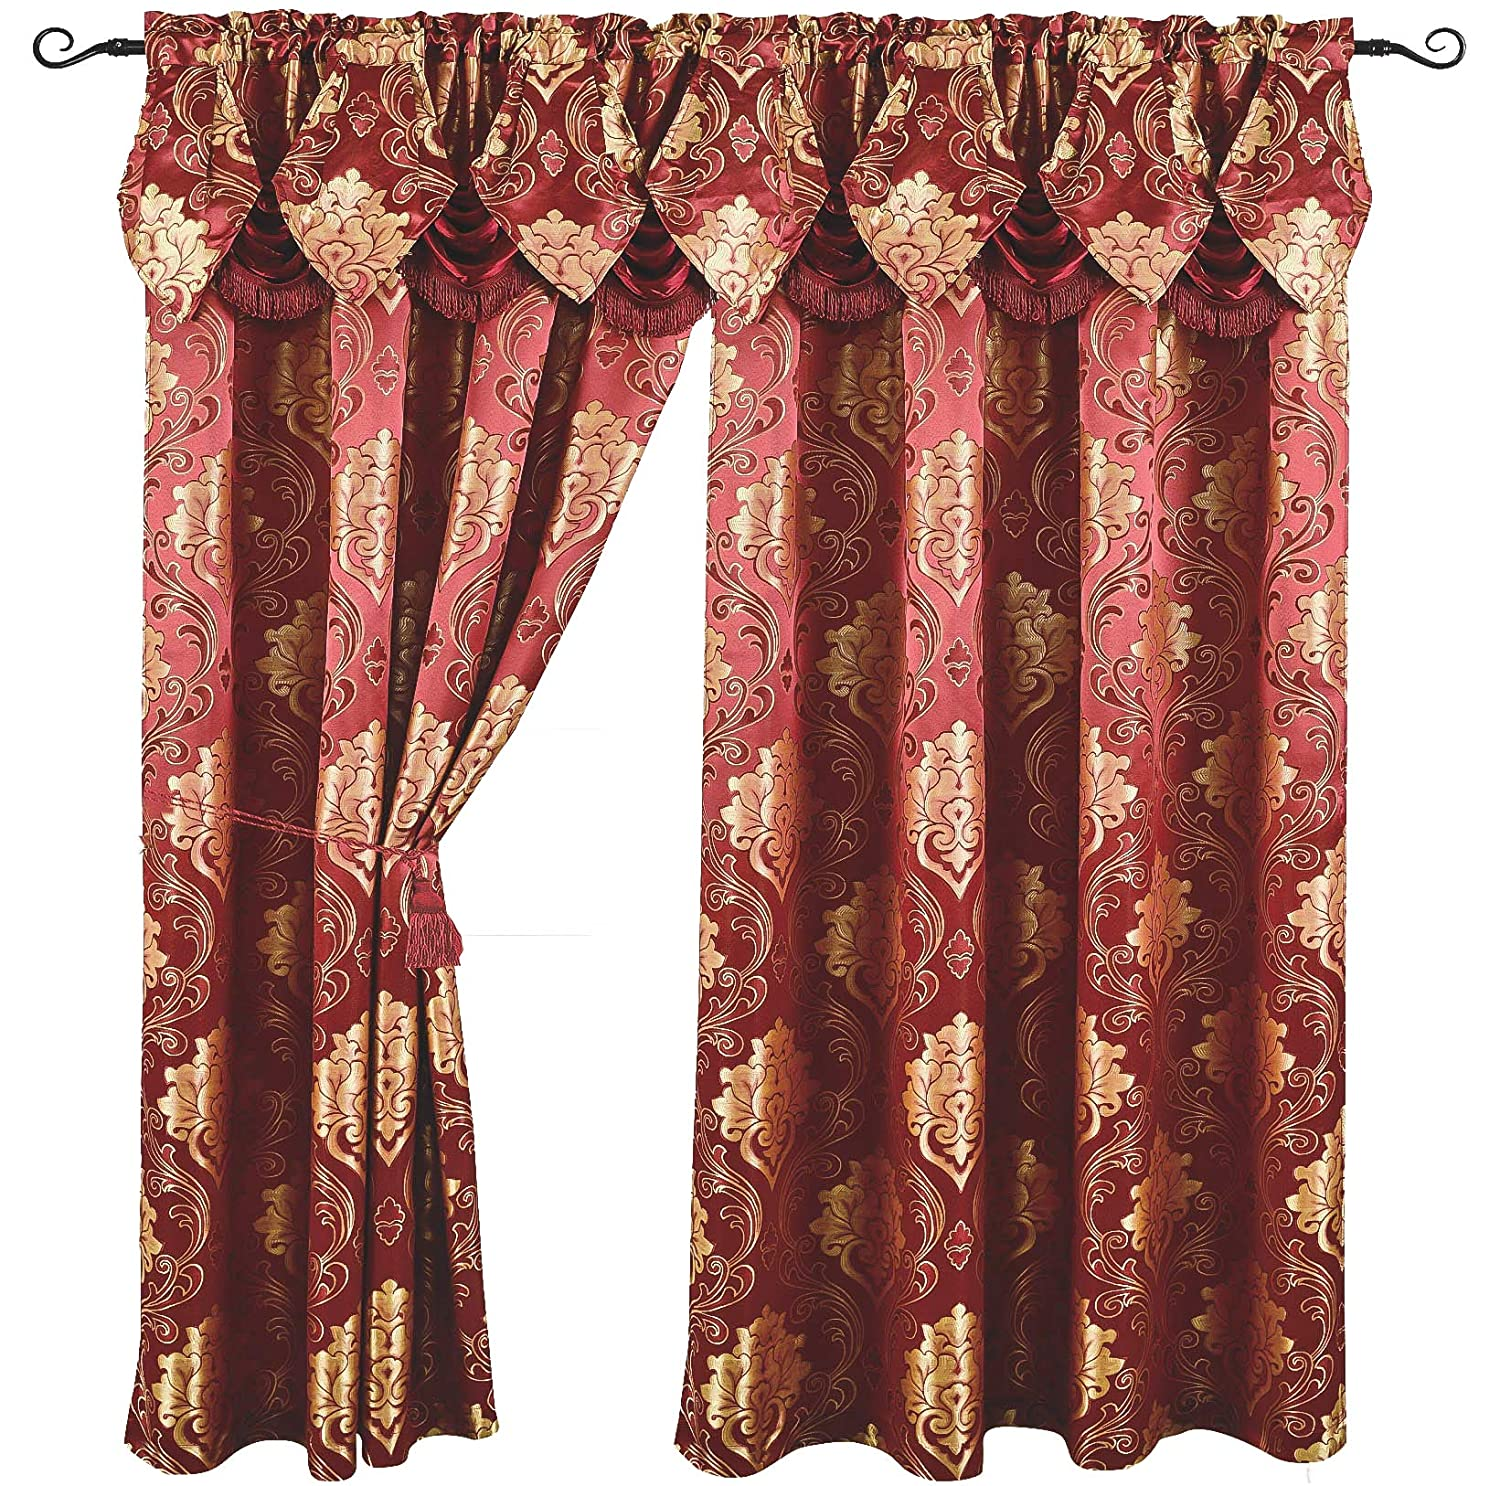 Luxury Jacquard Curtain Panel with Attached Waterfall Valance, 54 by 84-Inch Angelina Burgundy